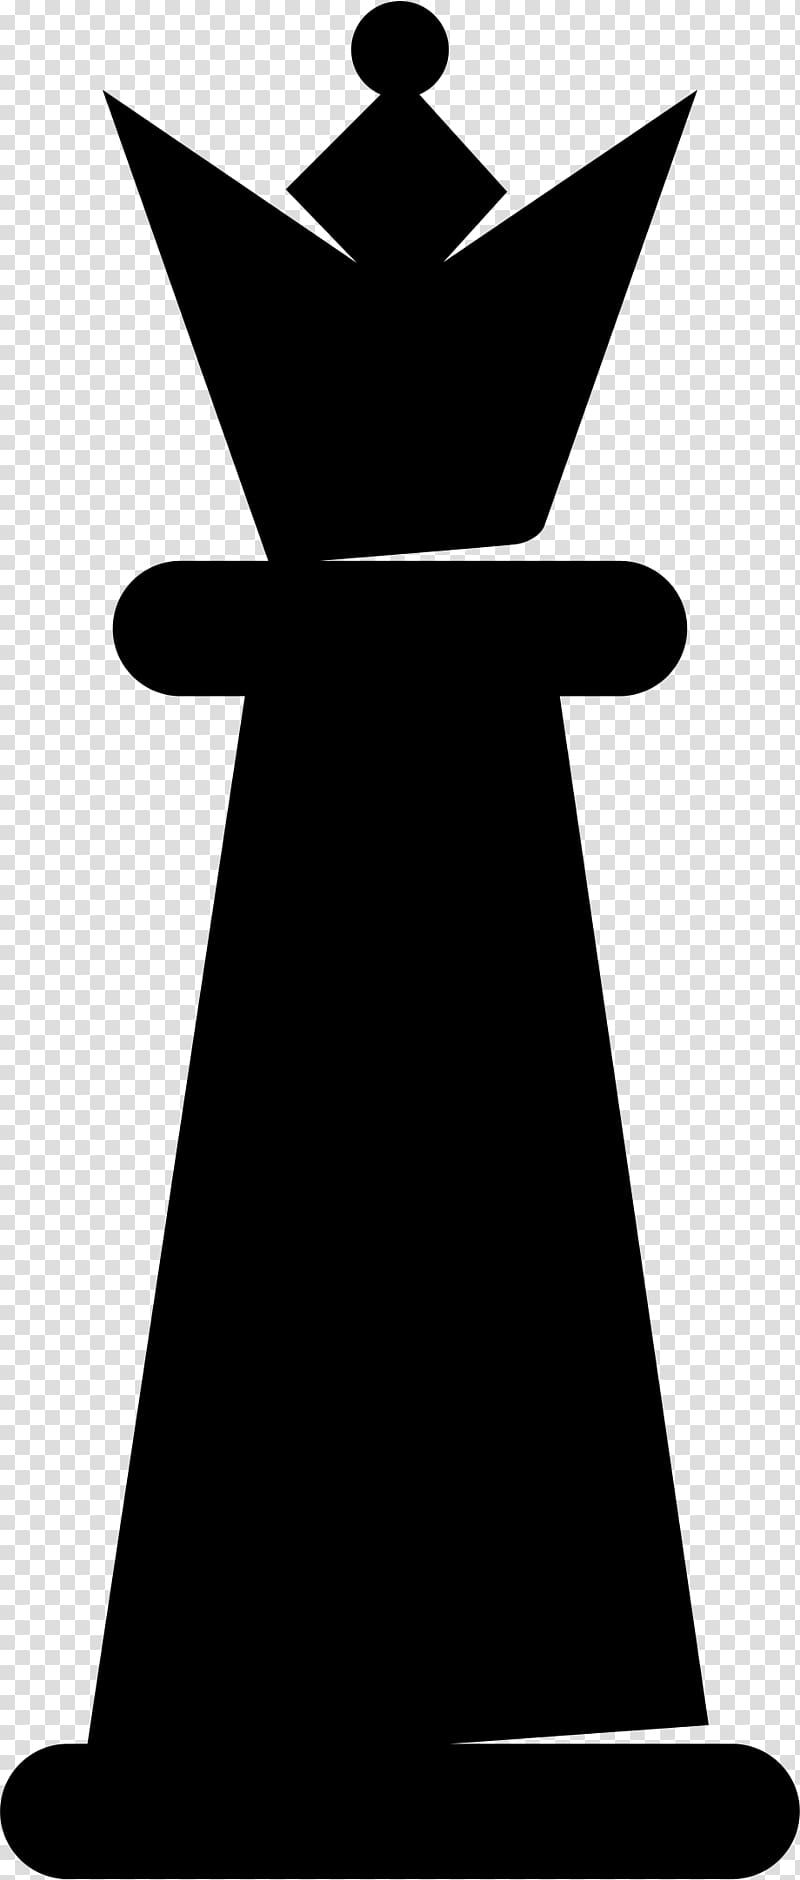 Chess piece Queen King, chess transparent background PNG.